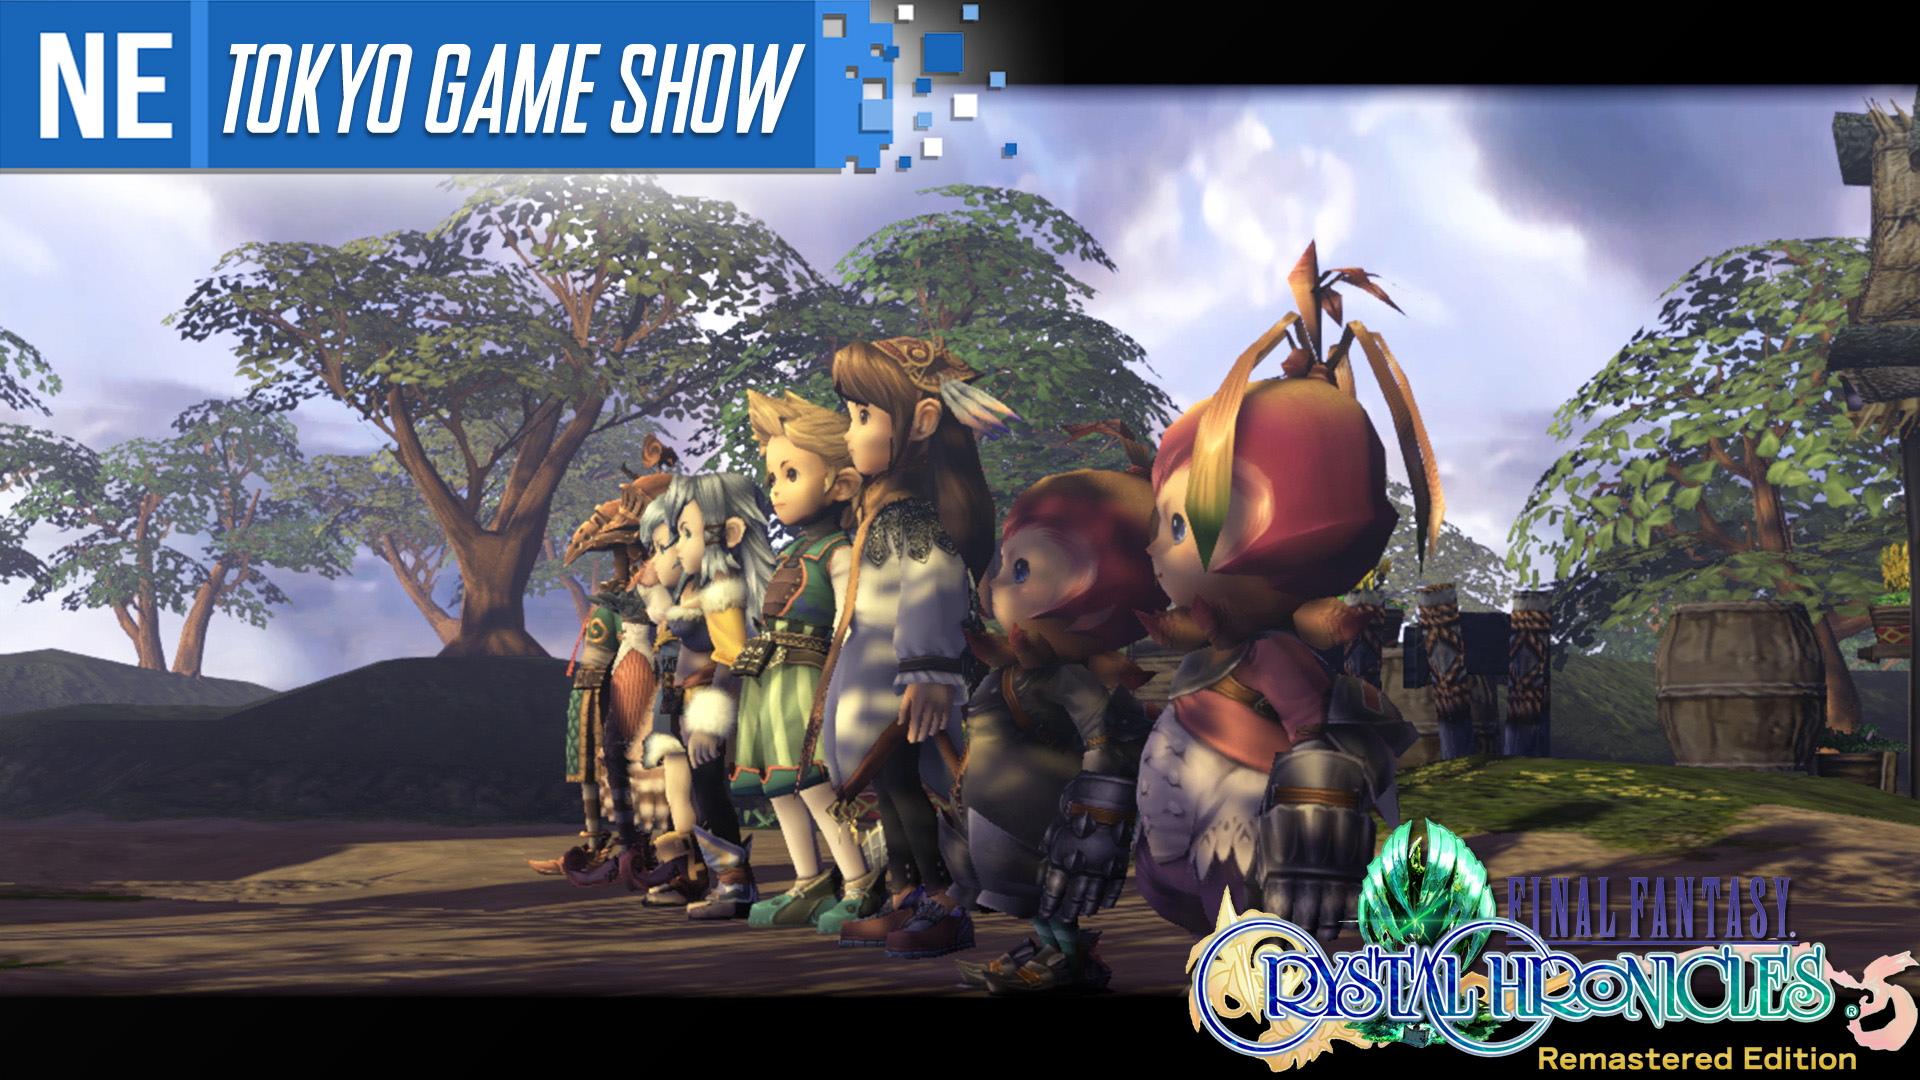 Impressions Final Fantasy Crystal Chronicles Remastered Edition